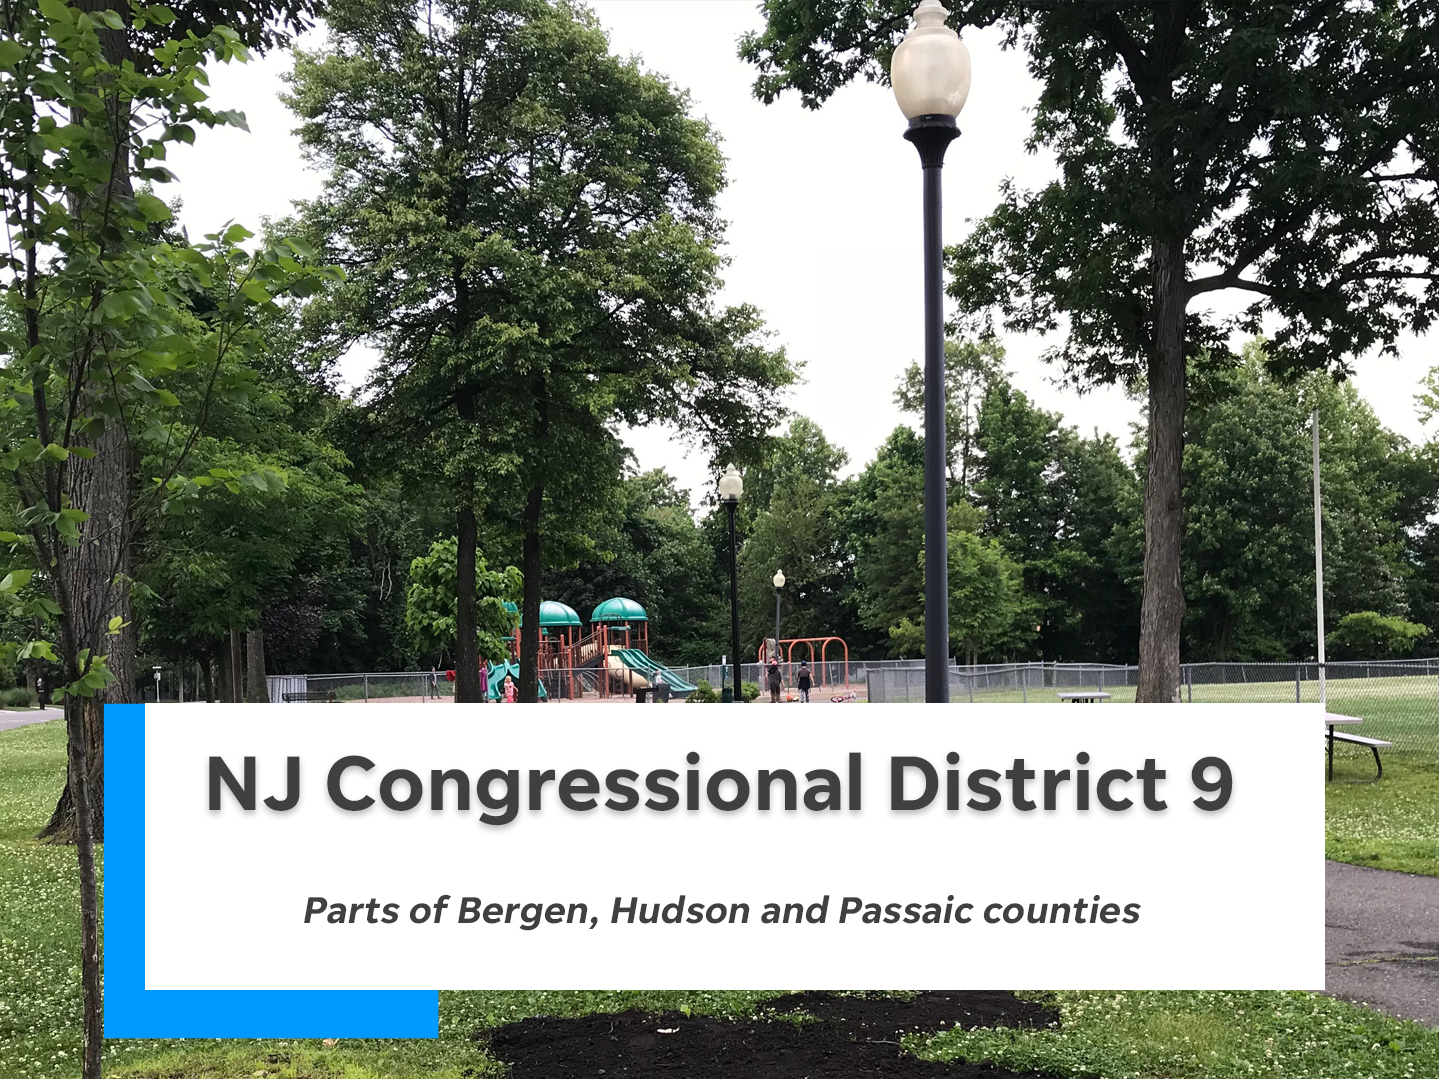 NJ's ninth congressional district is comprised of parts of Bergen, Hudson and Passaic counties.